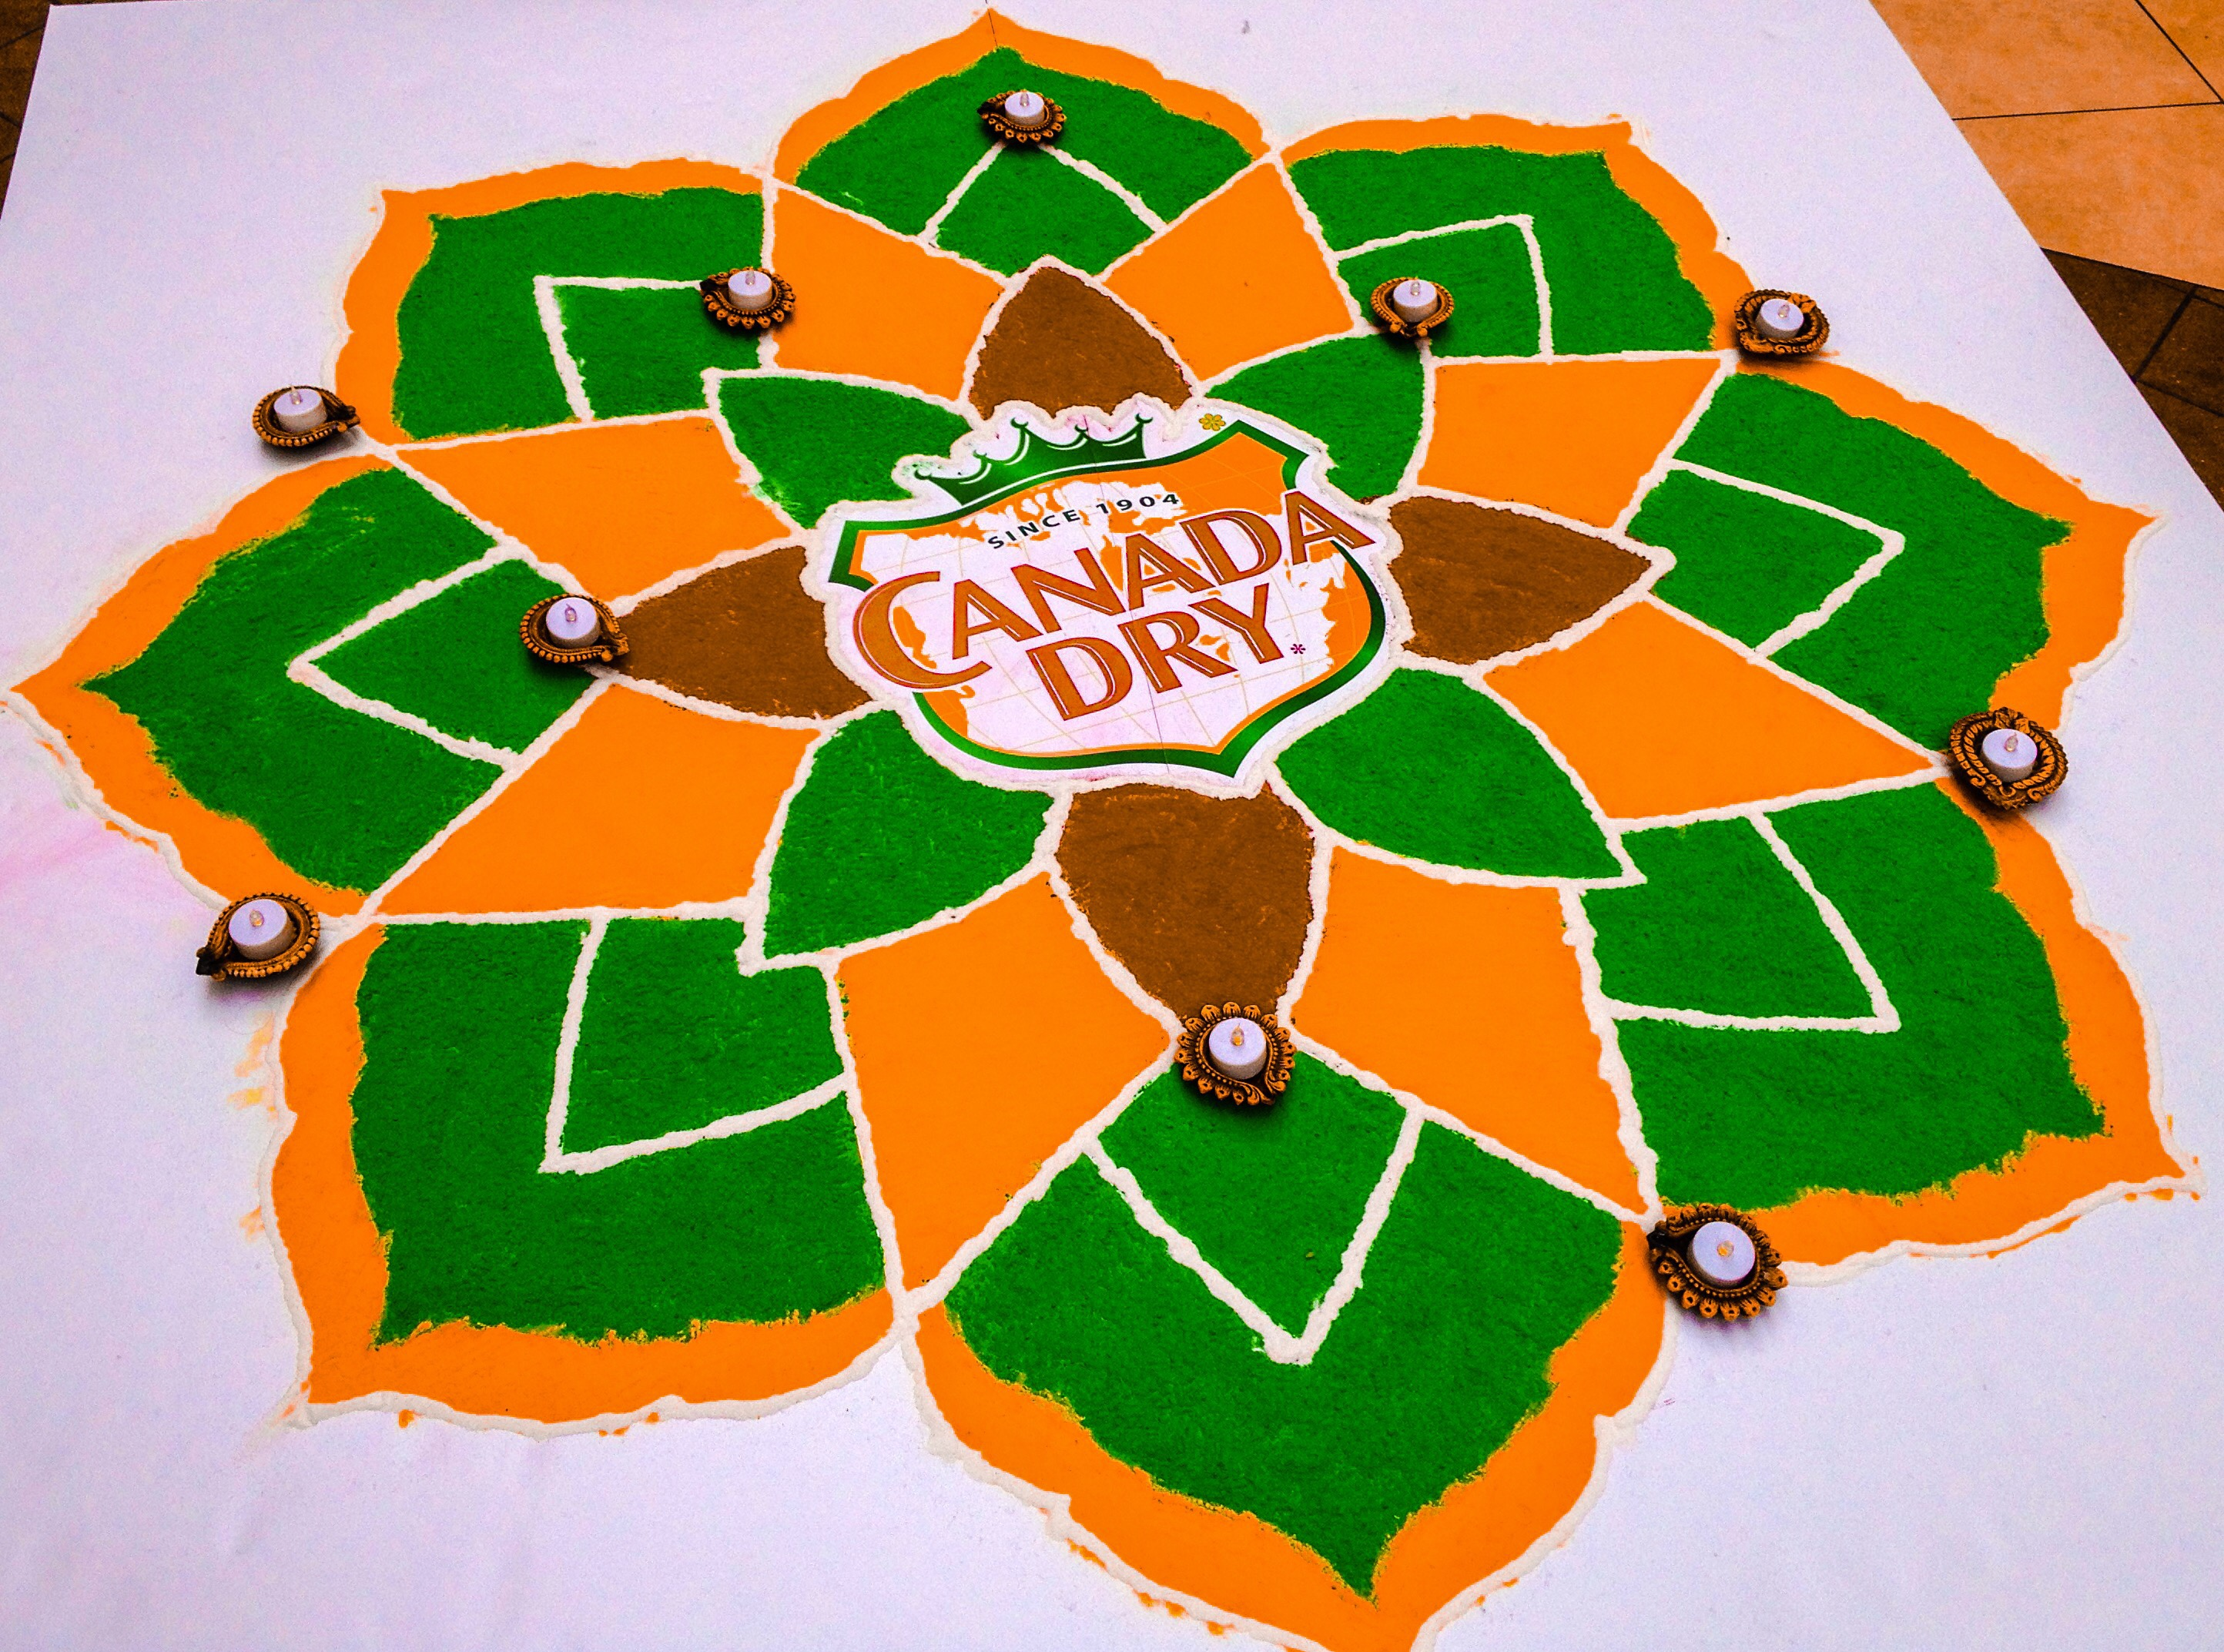 Rangoli at Bramalea City Center